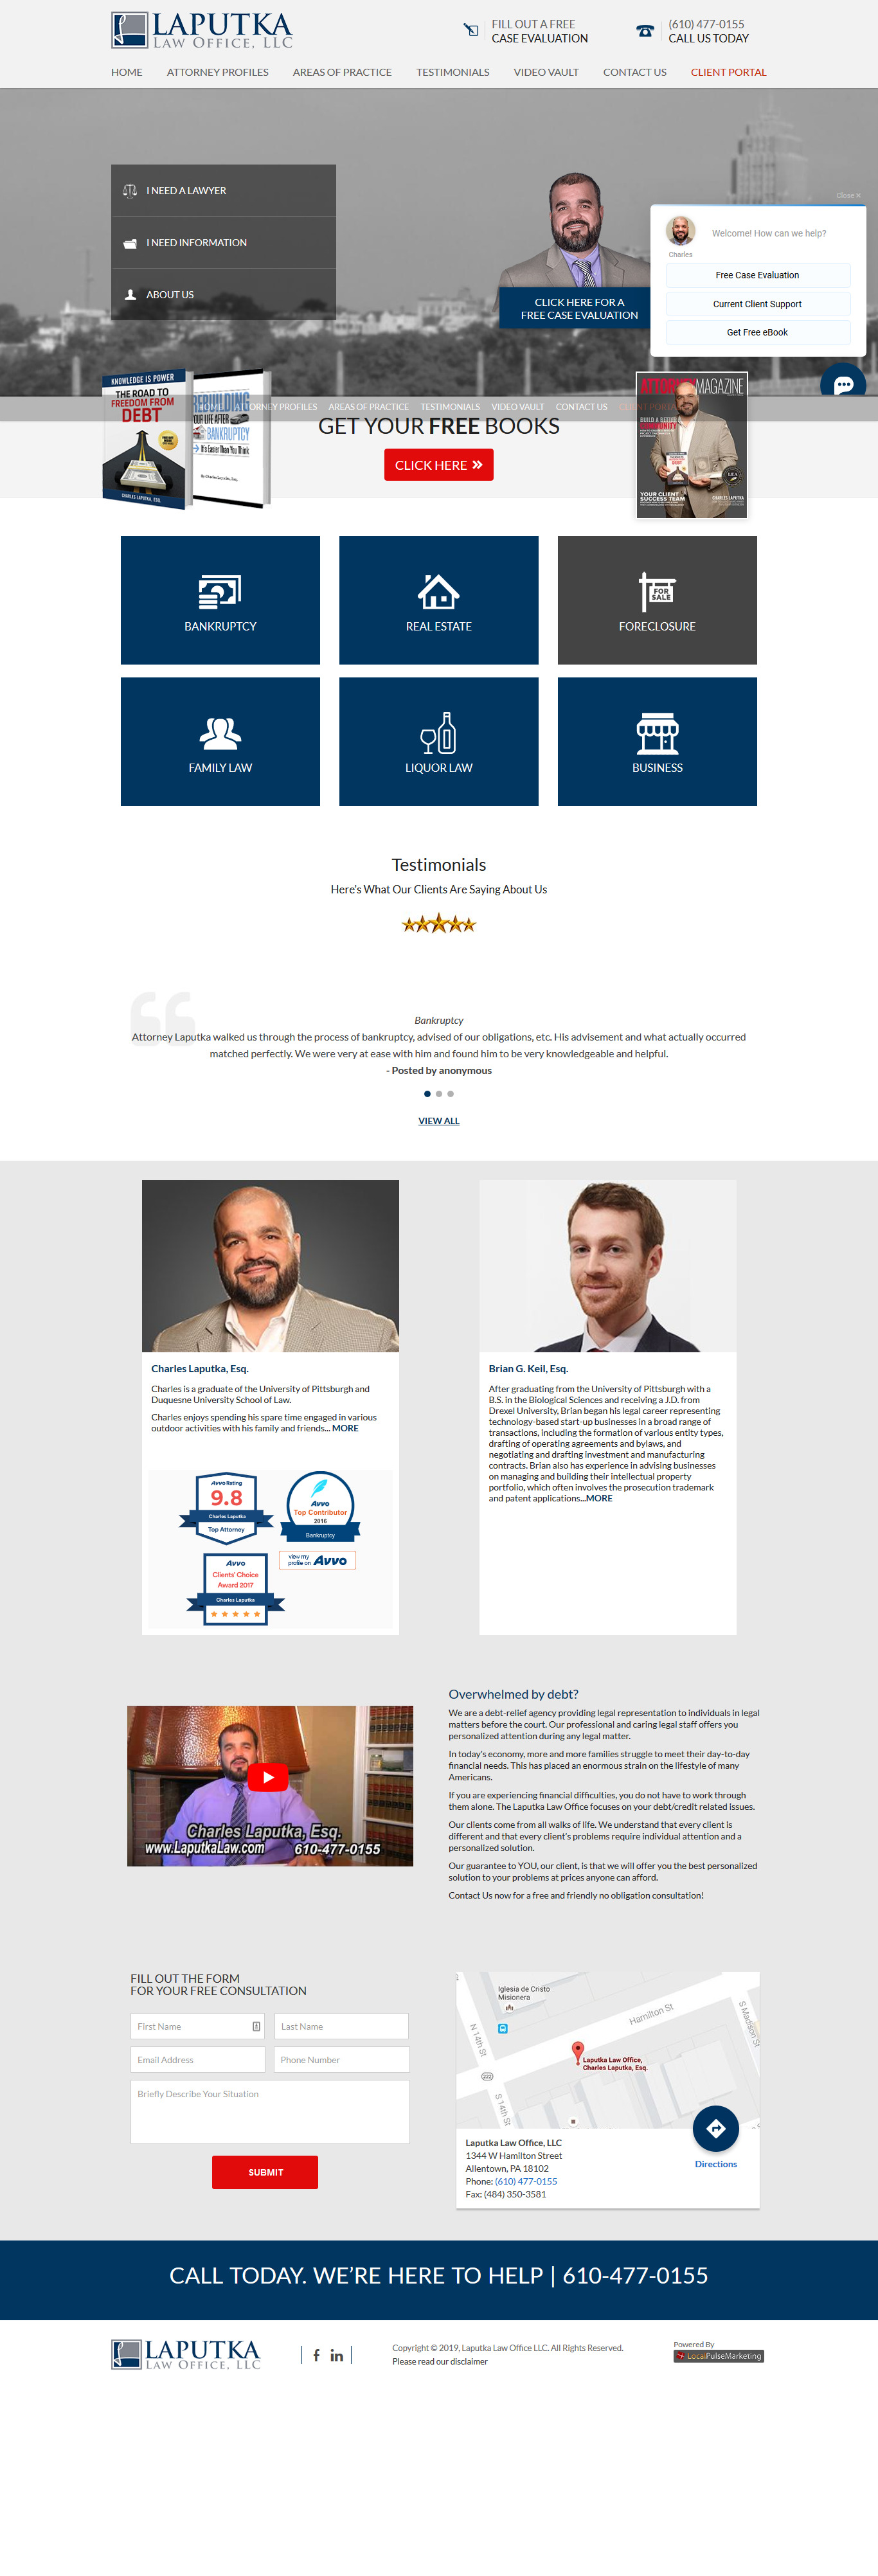 Bad landing page for legal departments